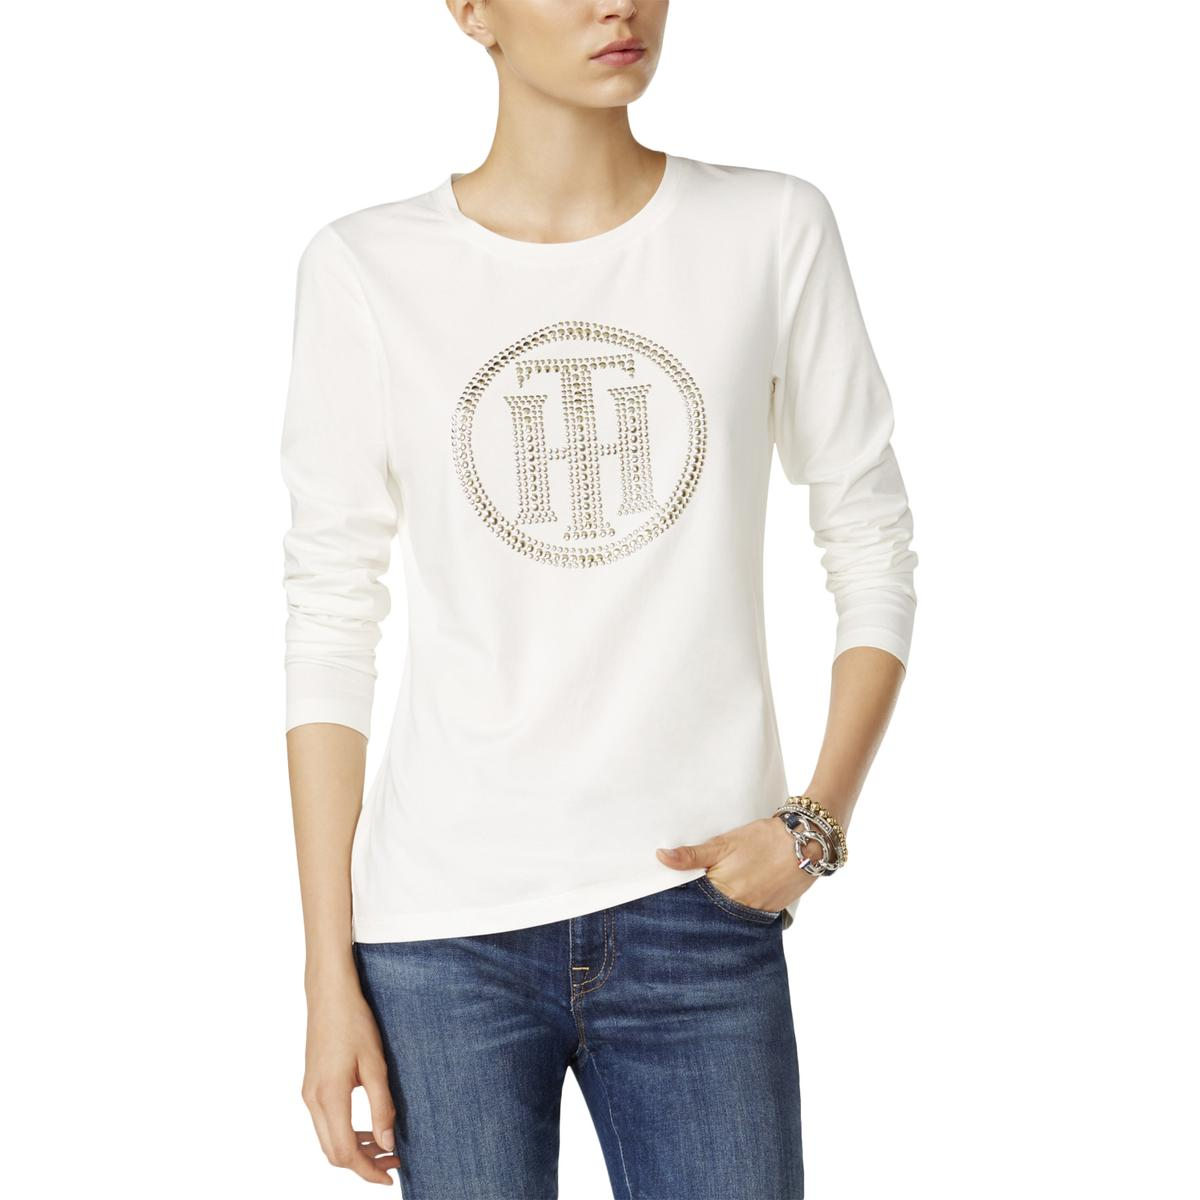 Tommy-Hilfiger-7816-Womens-Embellished-Long-Sleeves-Jersey-Knit-Top-Shirt-BHFO